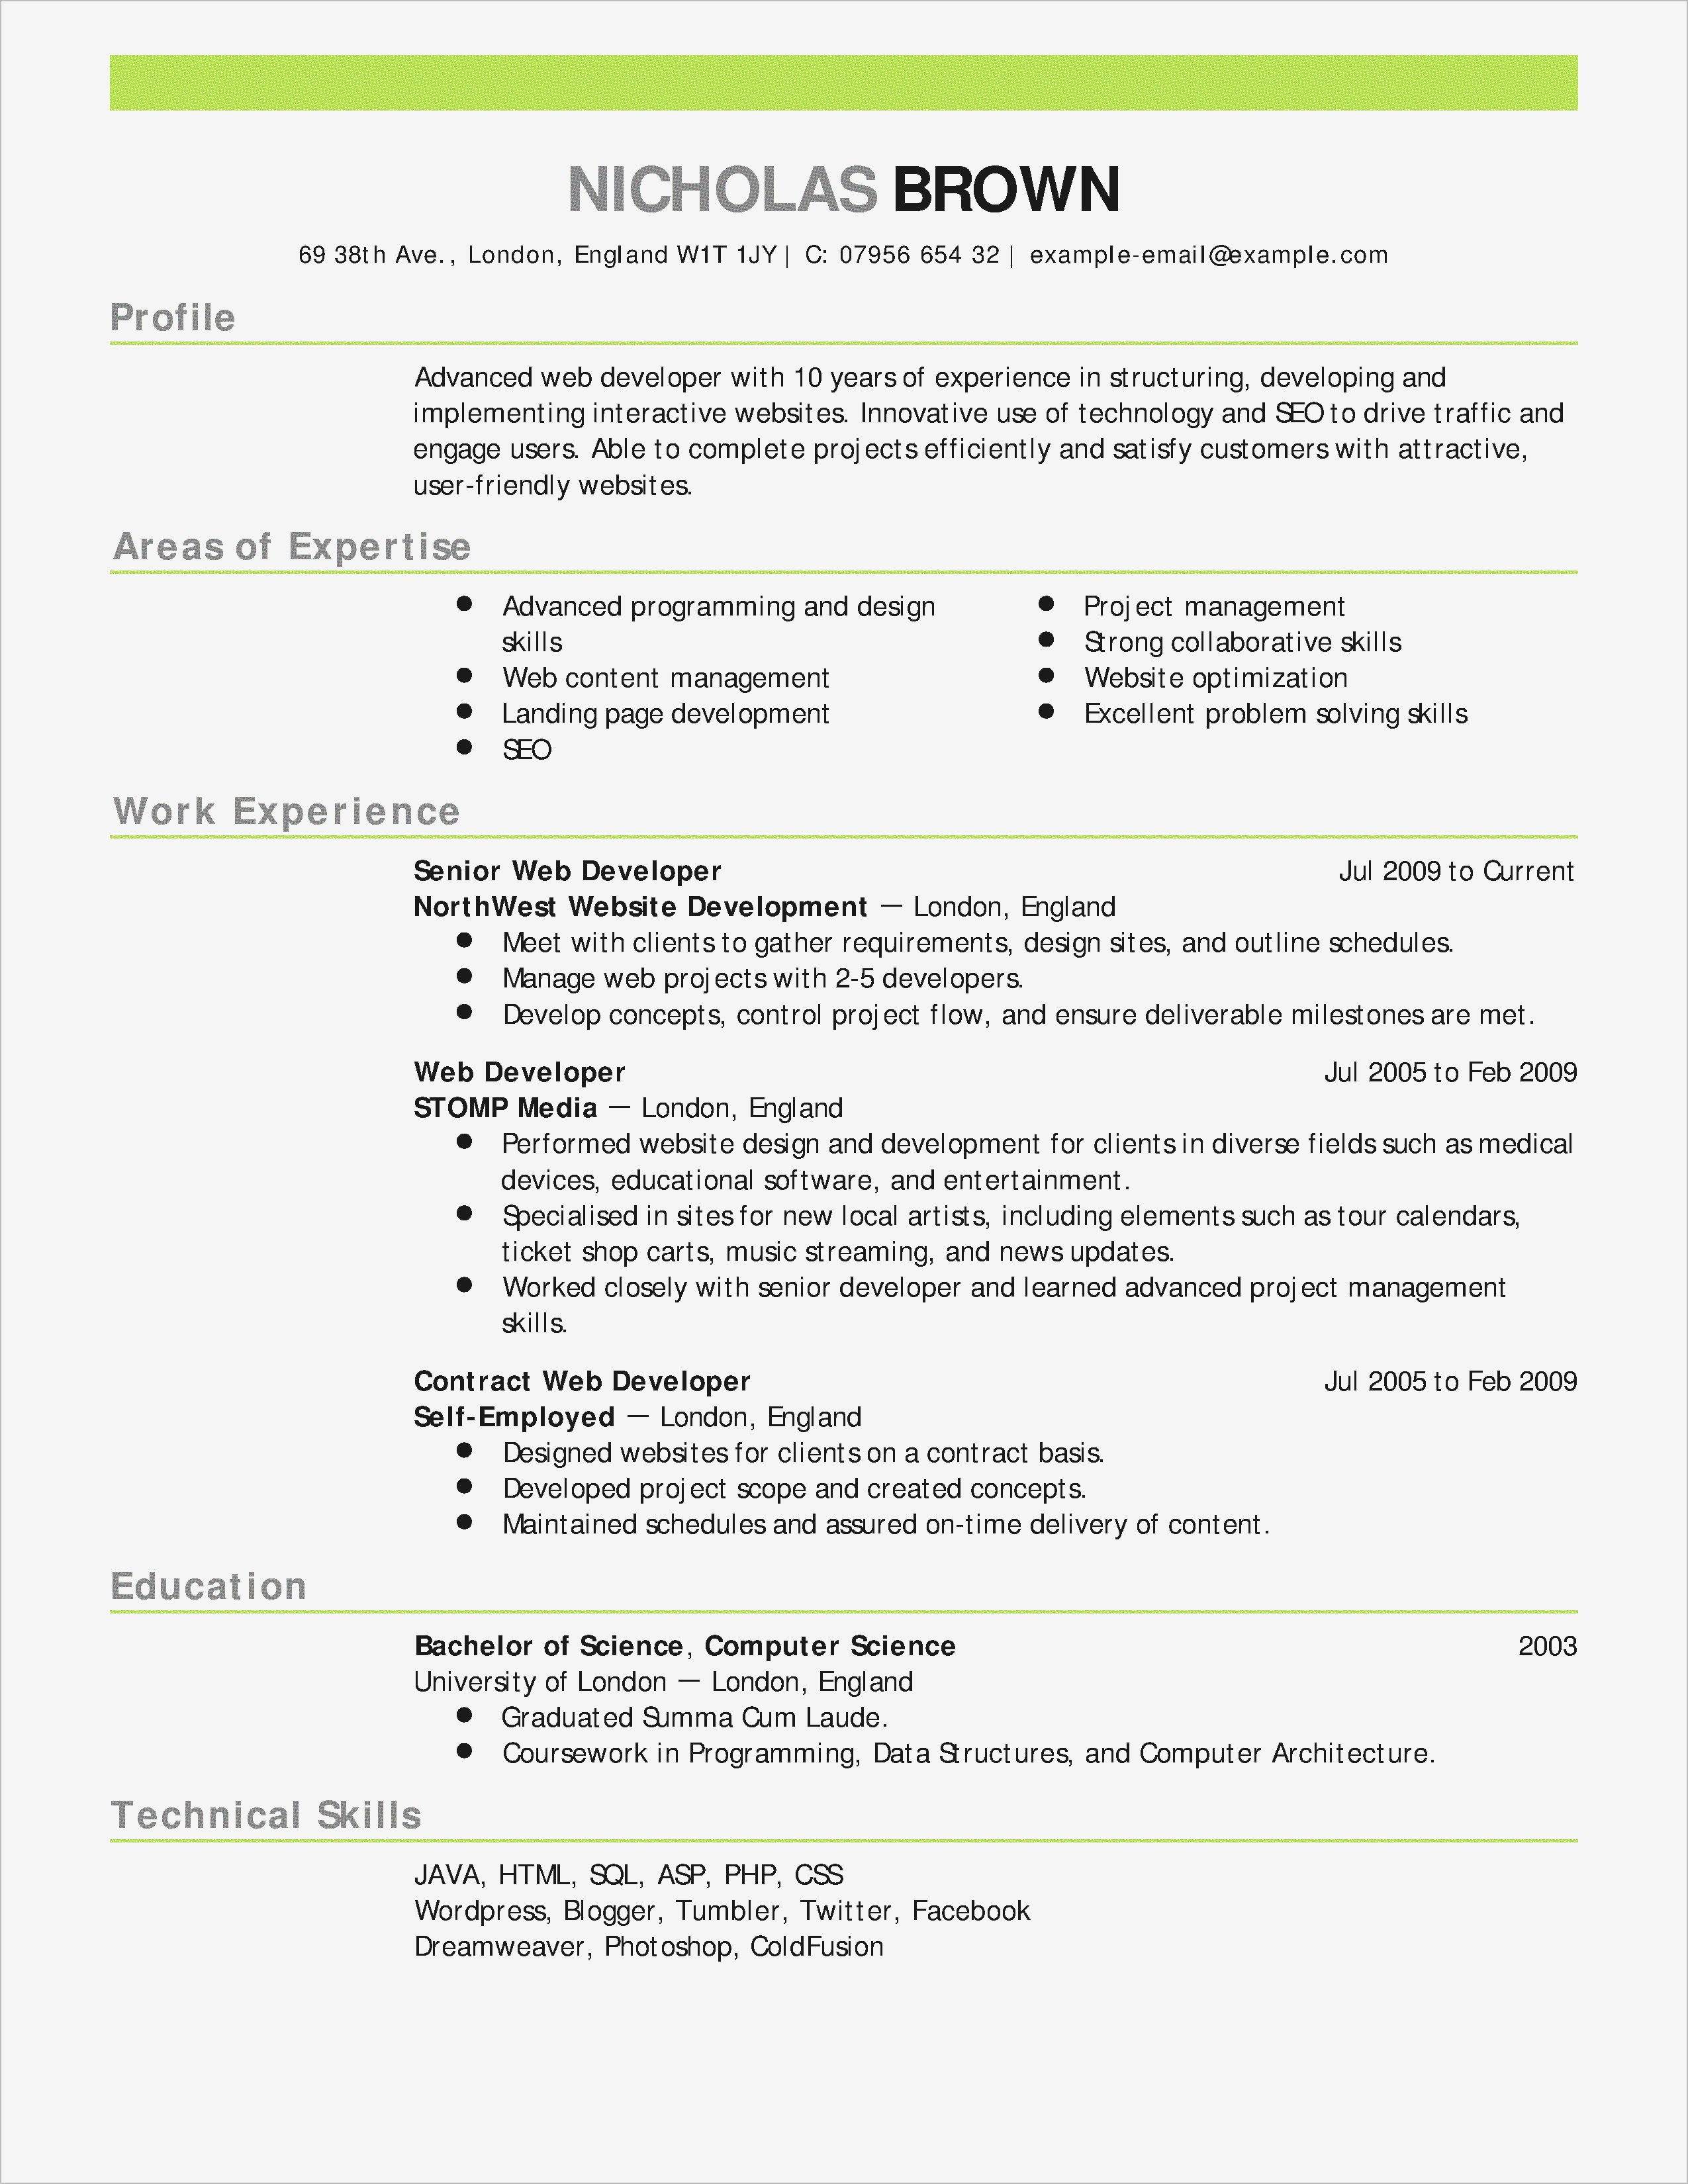 Lease Renewal Reminder Letter Template - Contract Reminder software New Example Resume Cover Letter Ideas